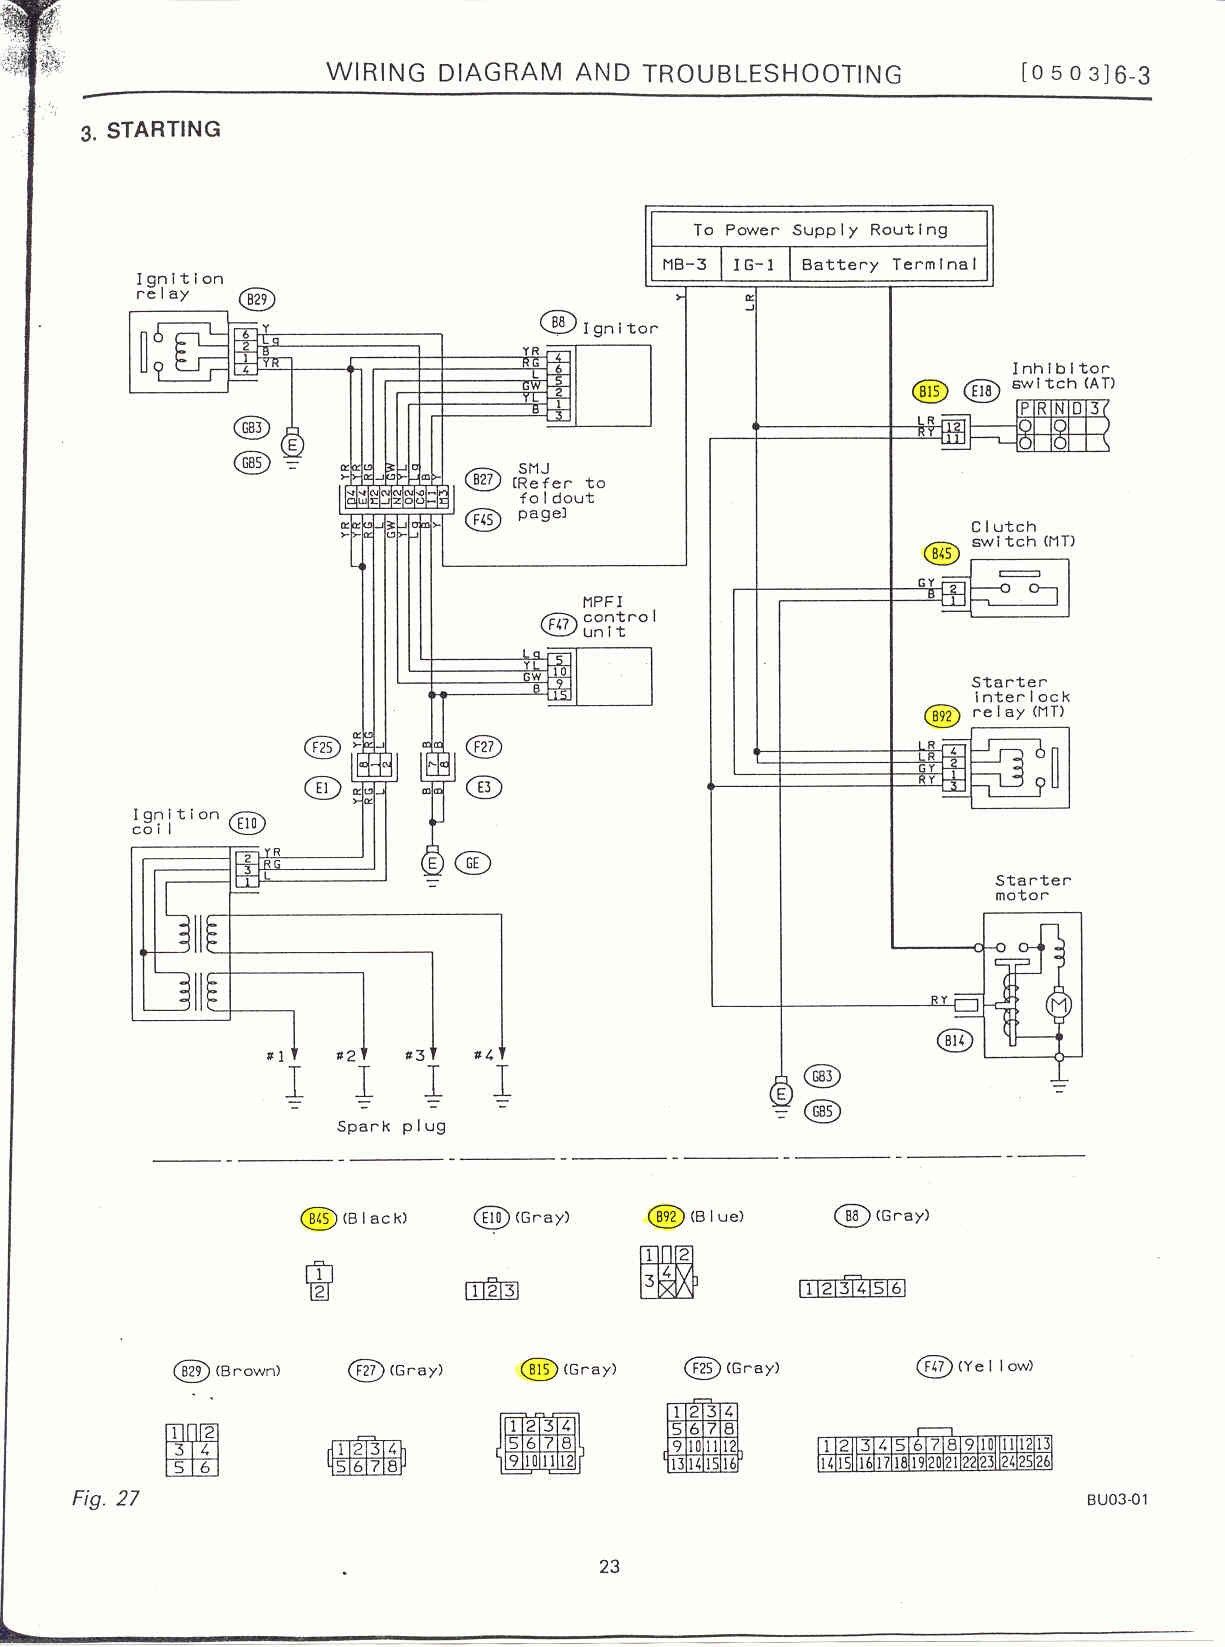 2015 subaru legacy power window wiring diagram push button start for a race car, without key. - scoobynet ... 2009 subaru forester power window wiring diagram #3